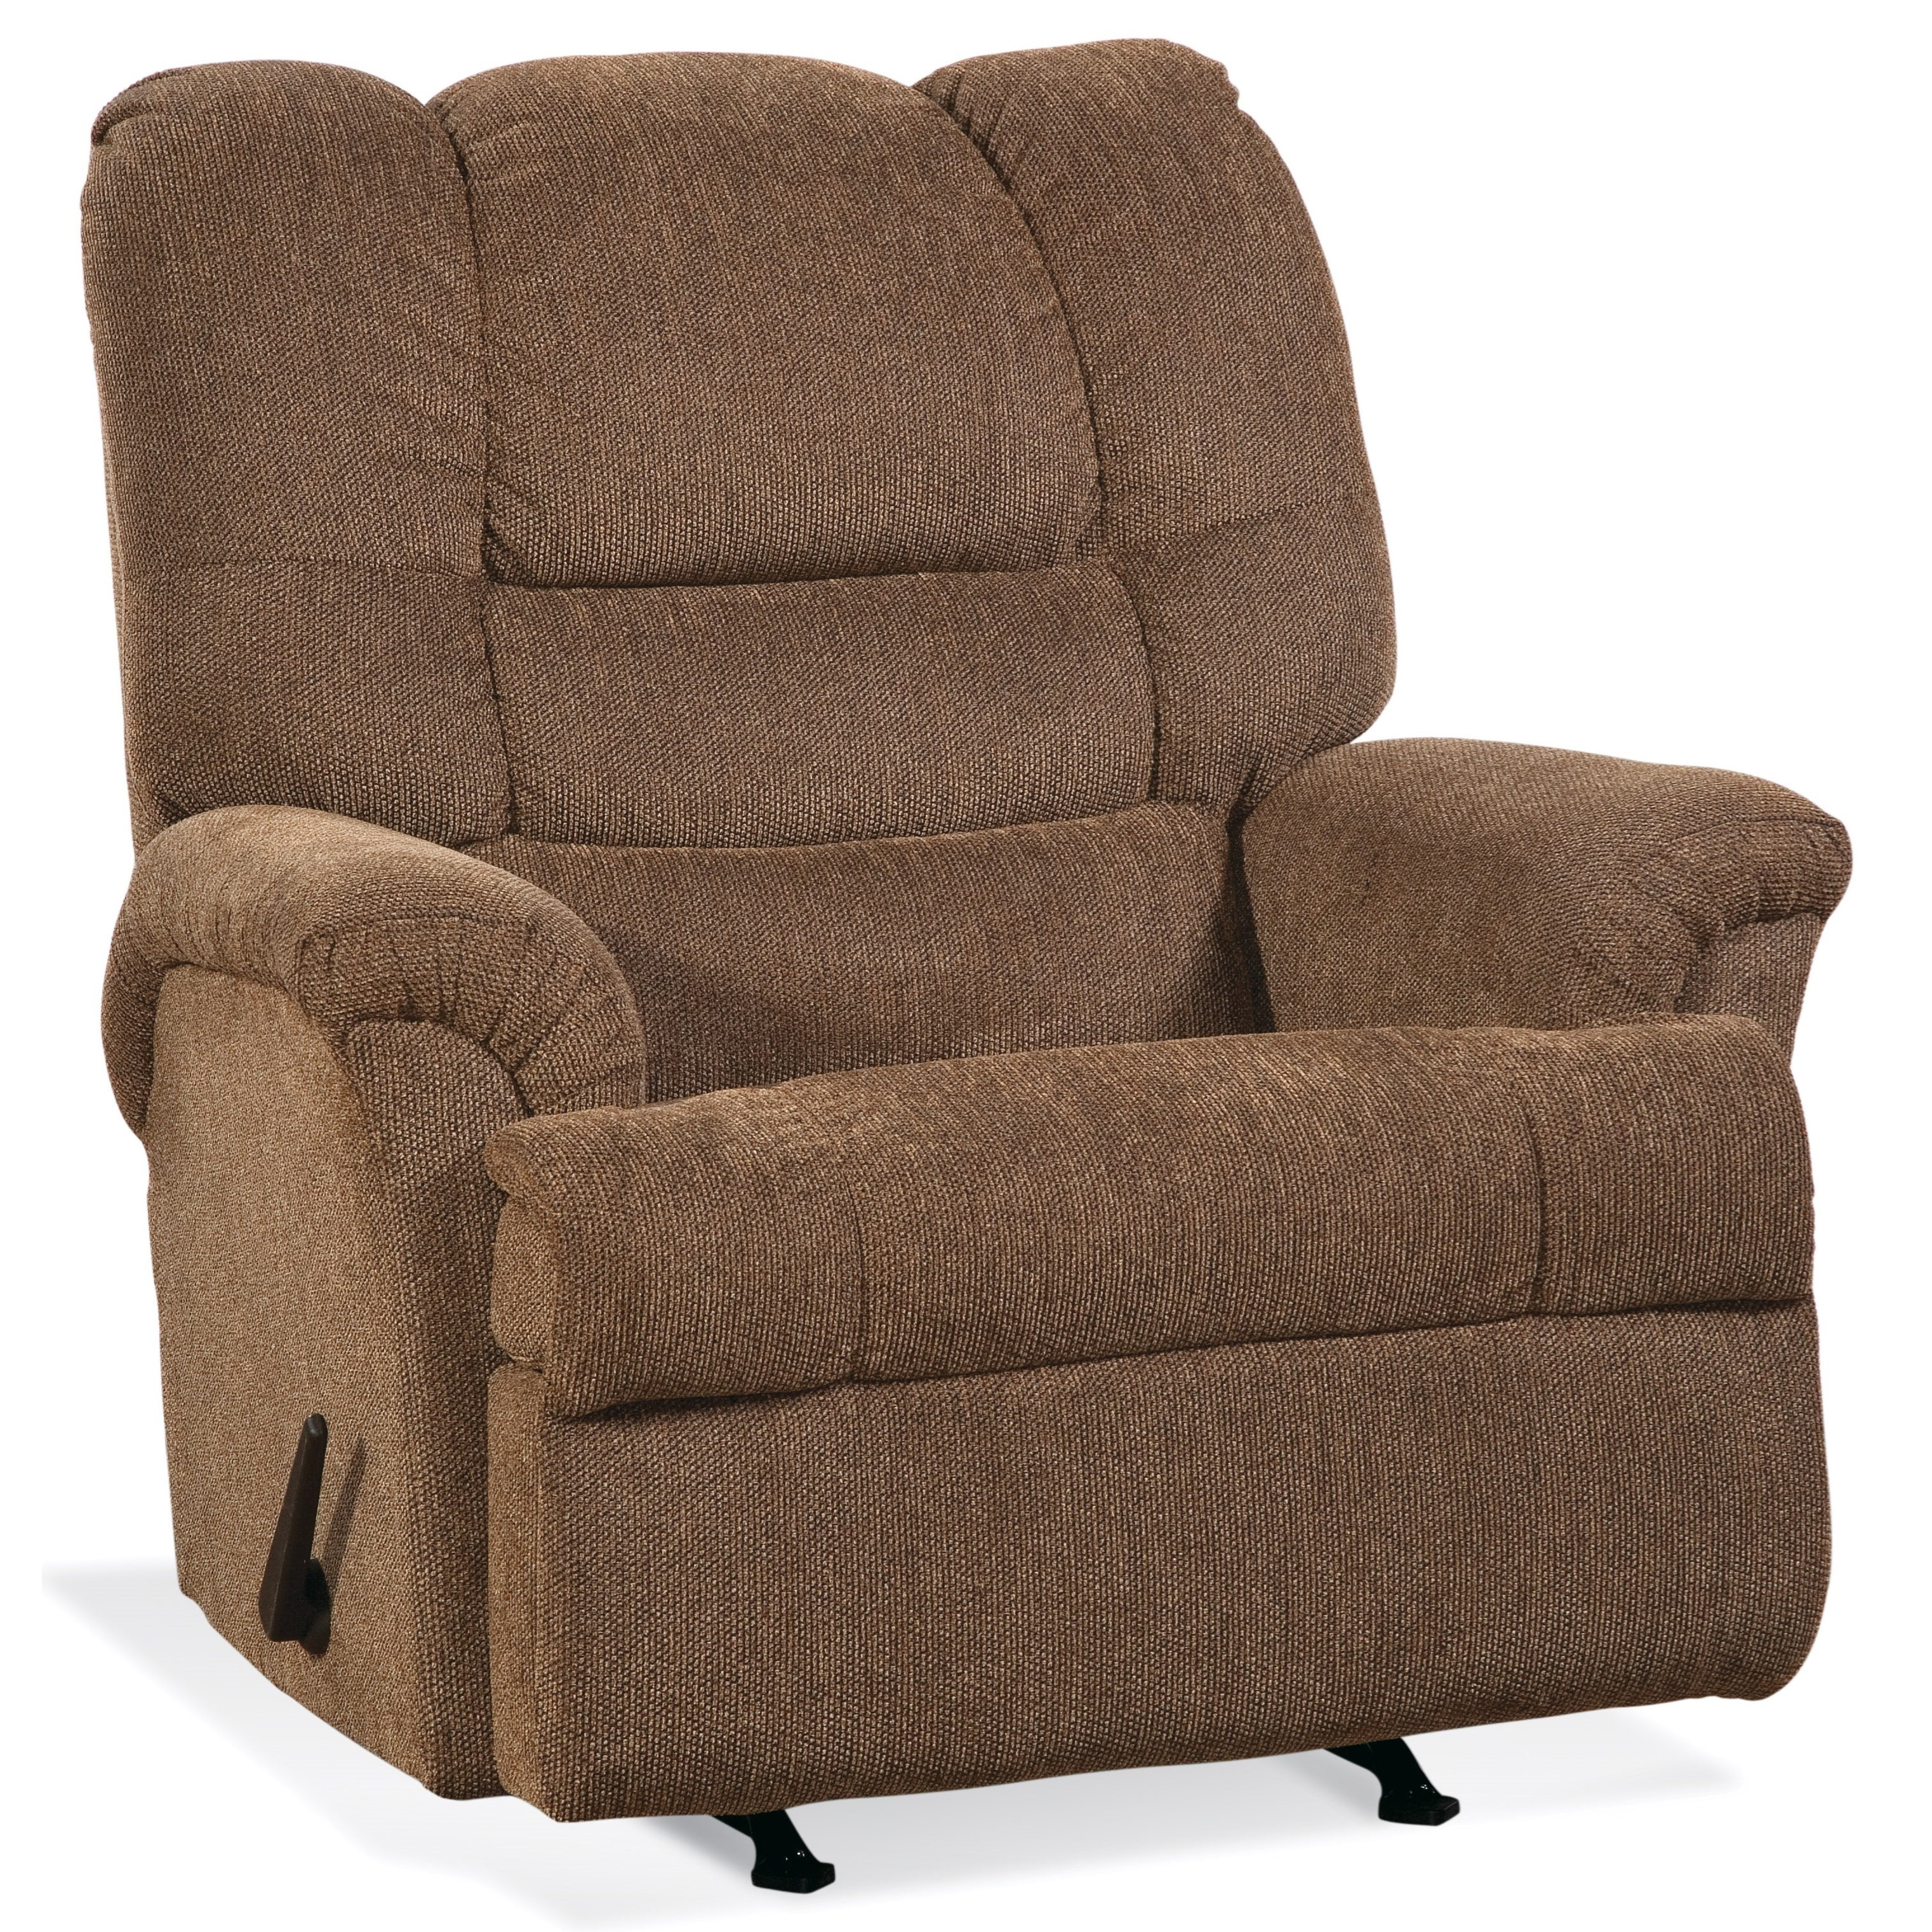 Serta Upholstery by Hughes Furniture 500 Recliner Recliner - Item Number: 500RCL